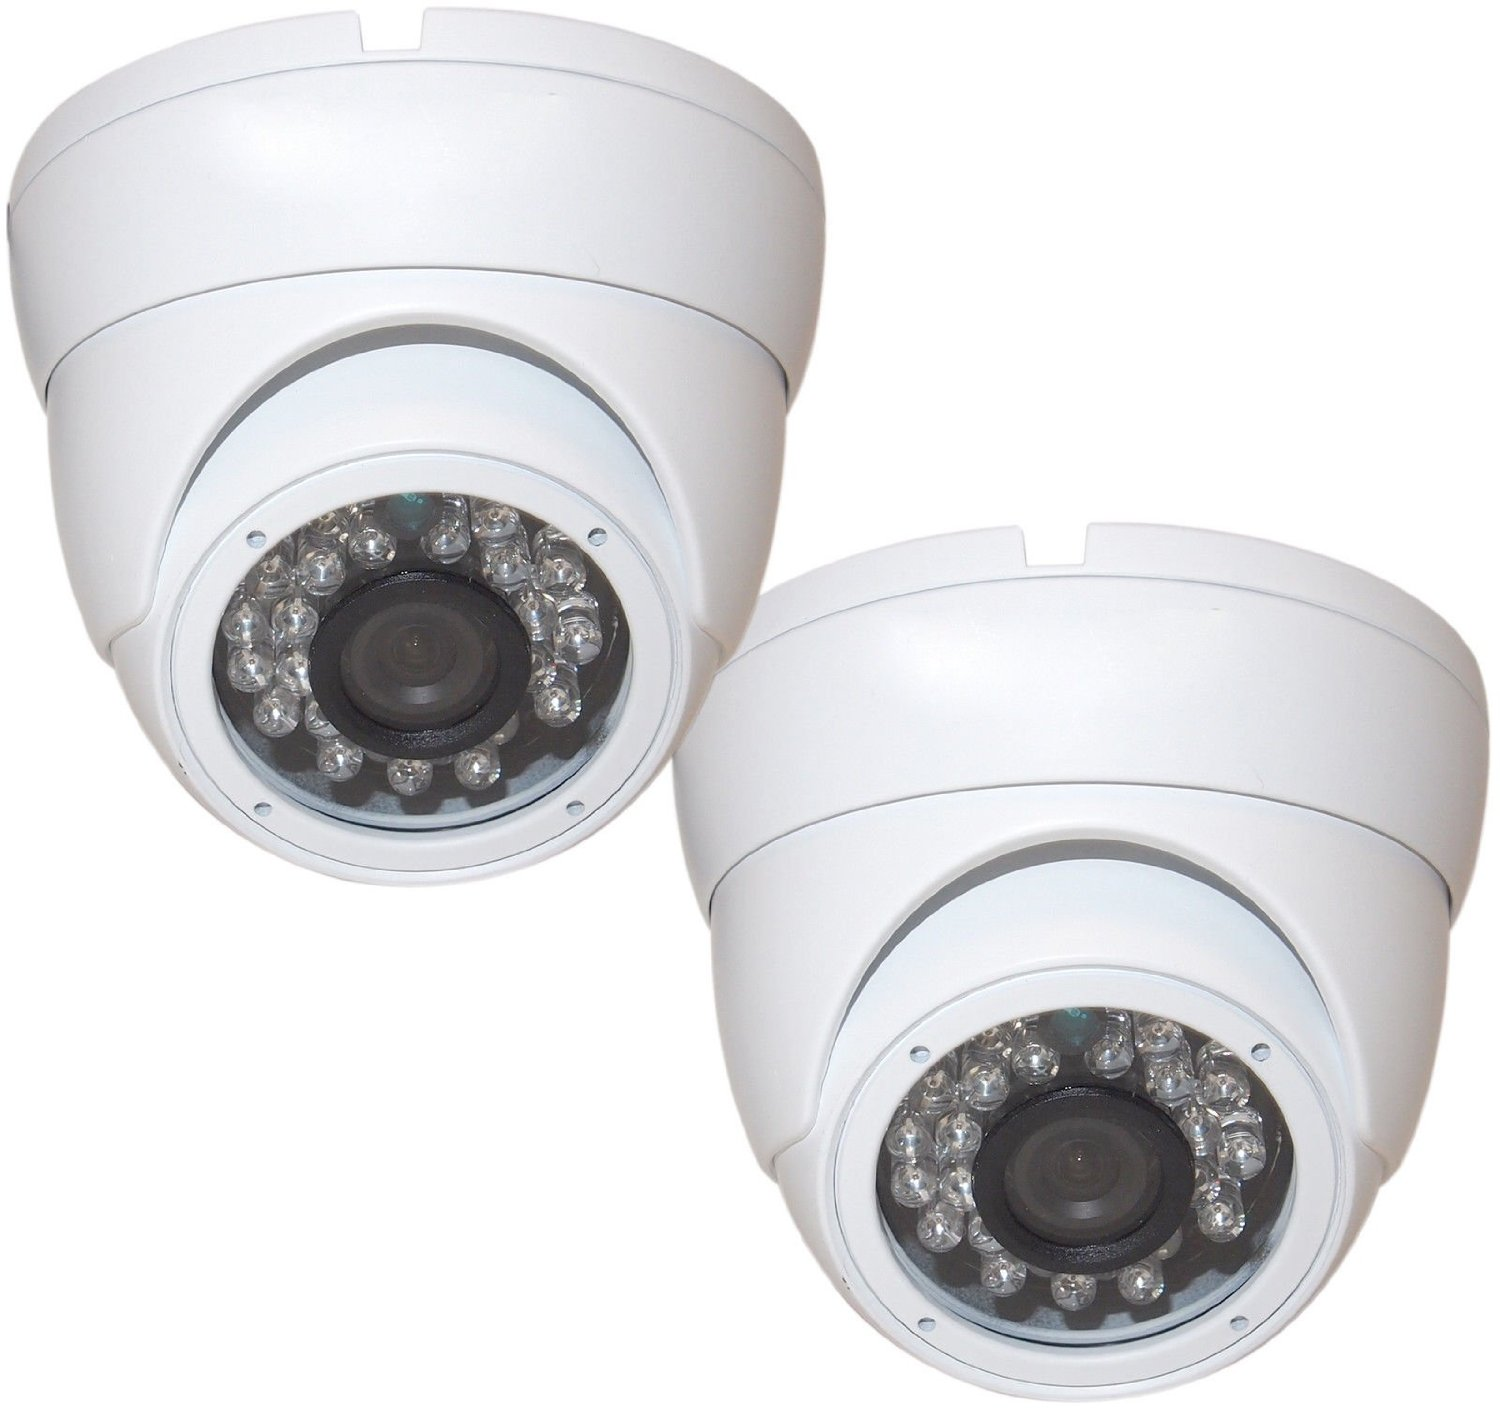 Evertech Indoor Security Systems